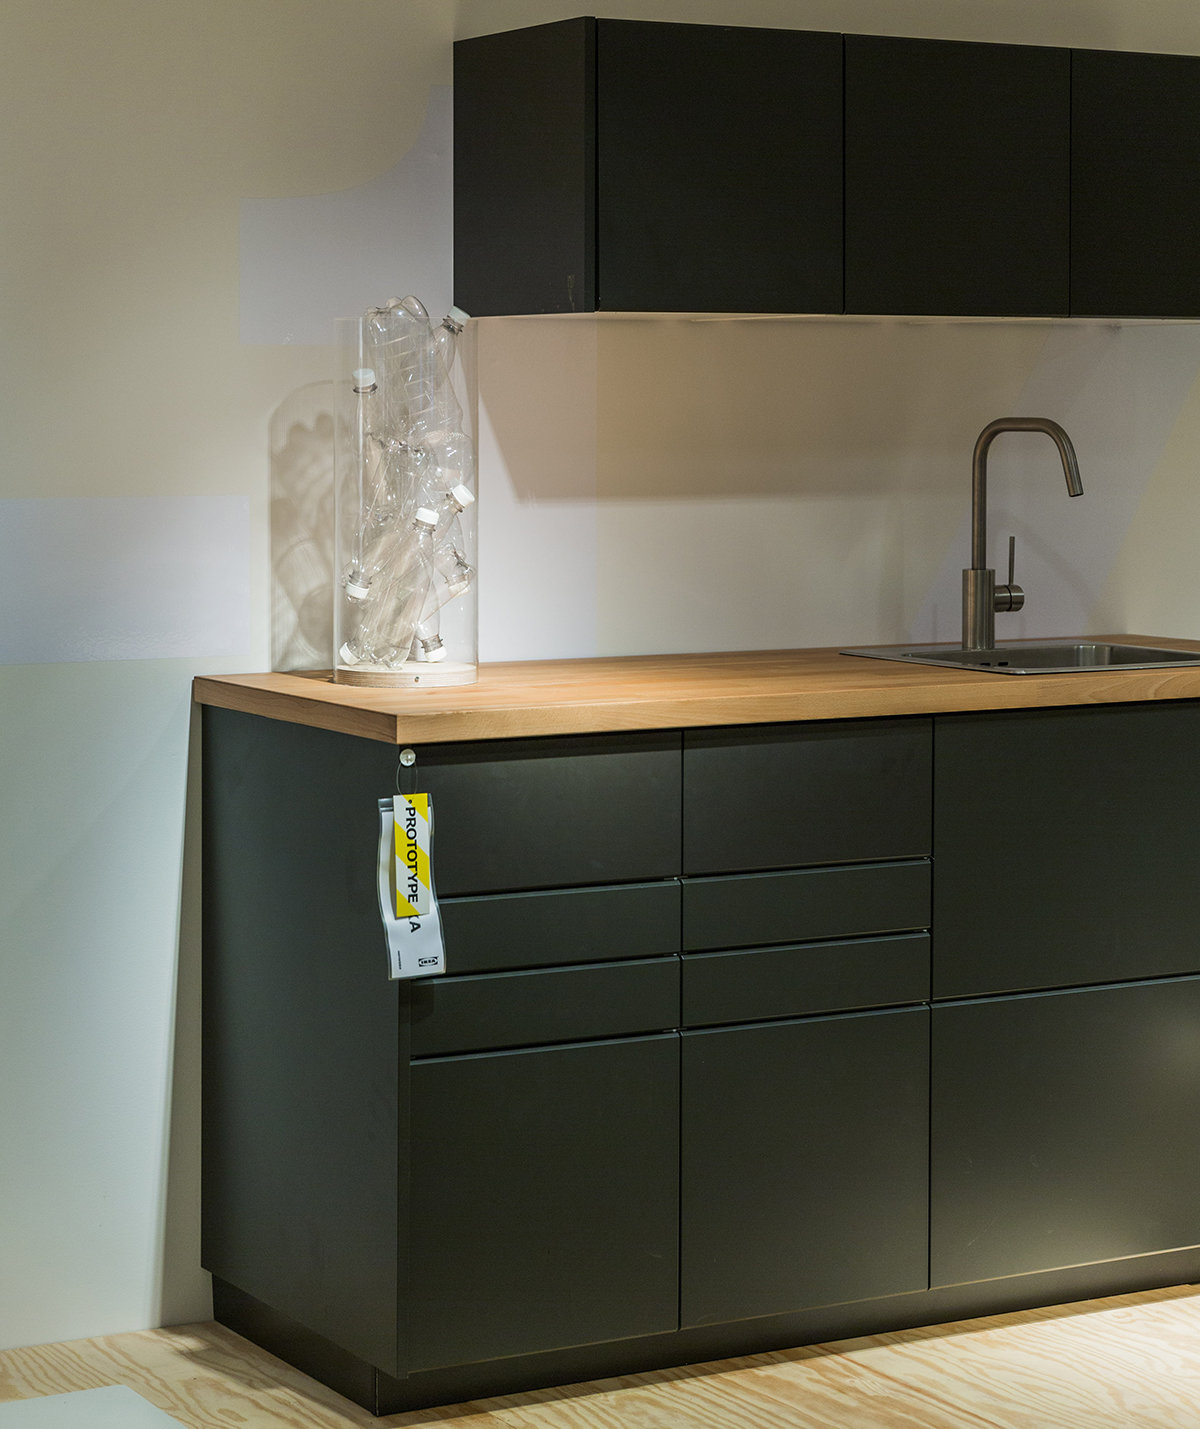 Ikea Küchen Kungsbacka Ikea Is Turning Recycled Bottles Into Kitchen Cabinets